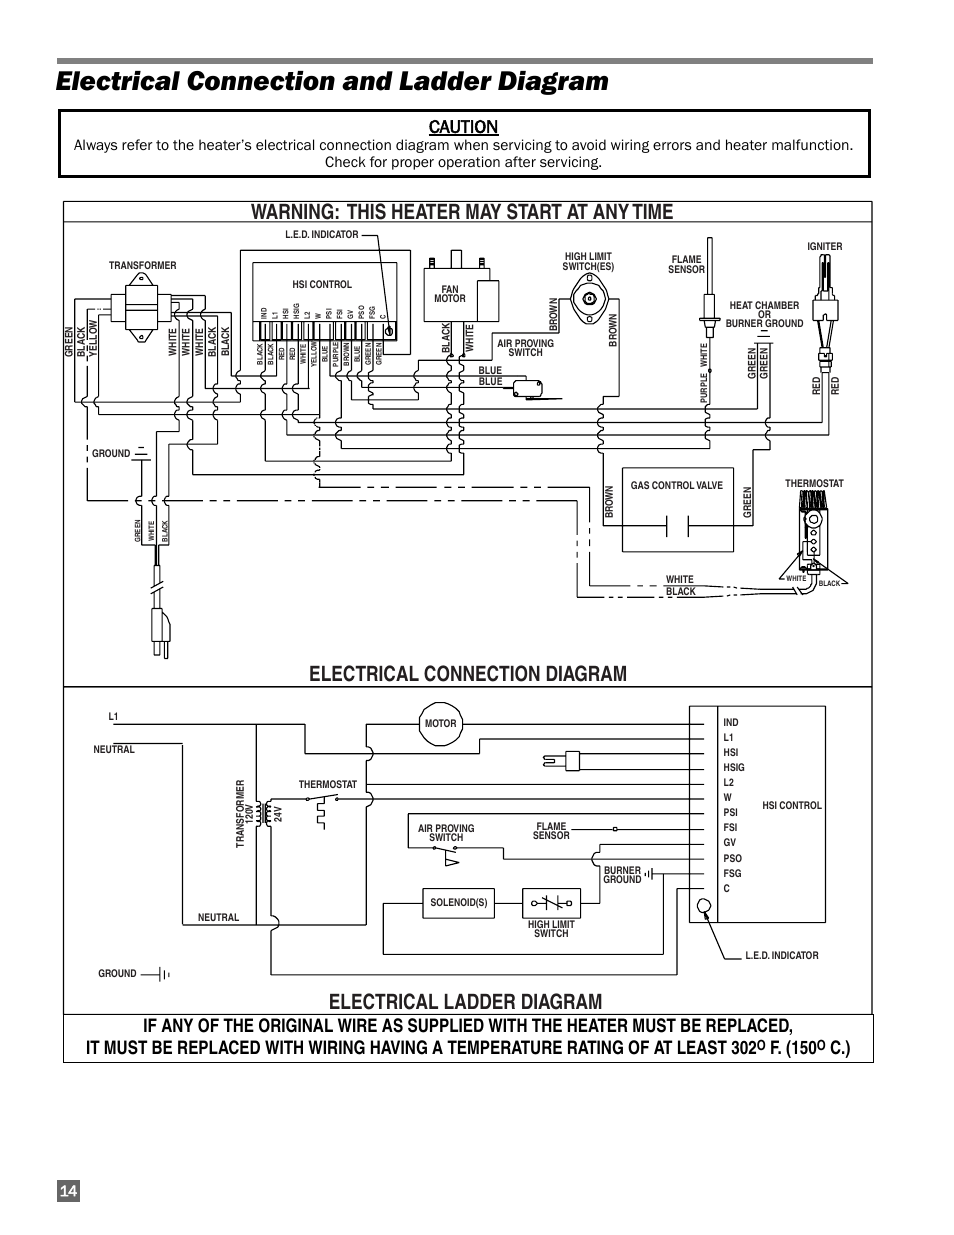 Electrical connection diagrams electrical connection and ladder electrical connection diagrams electrical connection and ladder diagram caution f ccuart Gallery